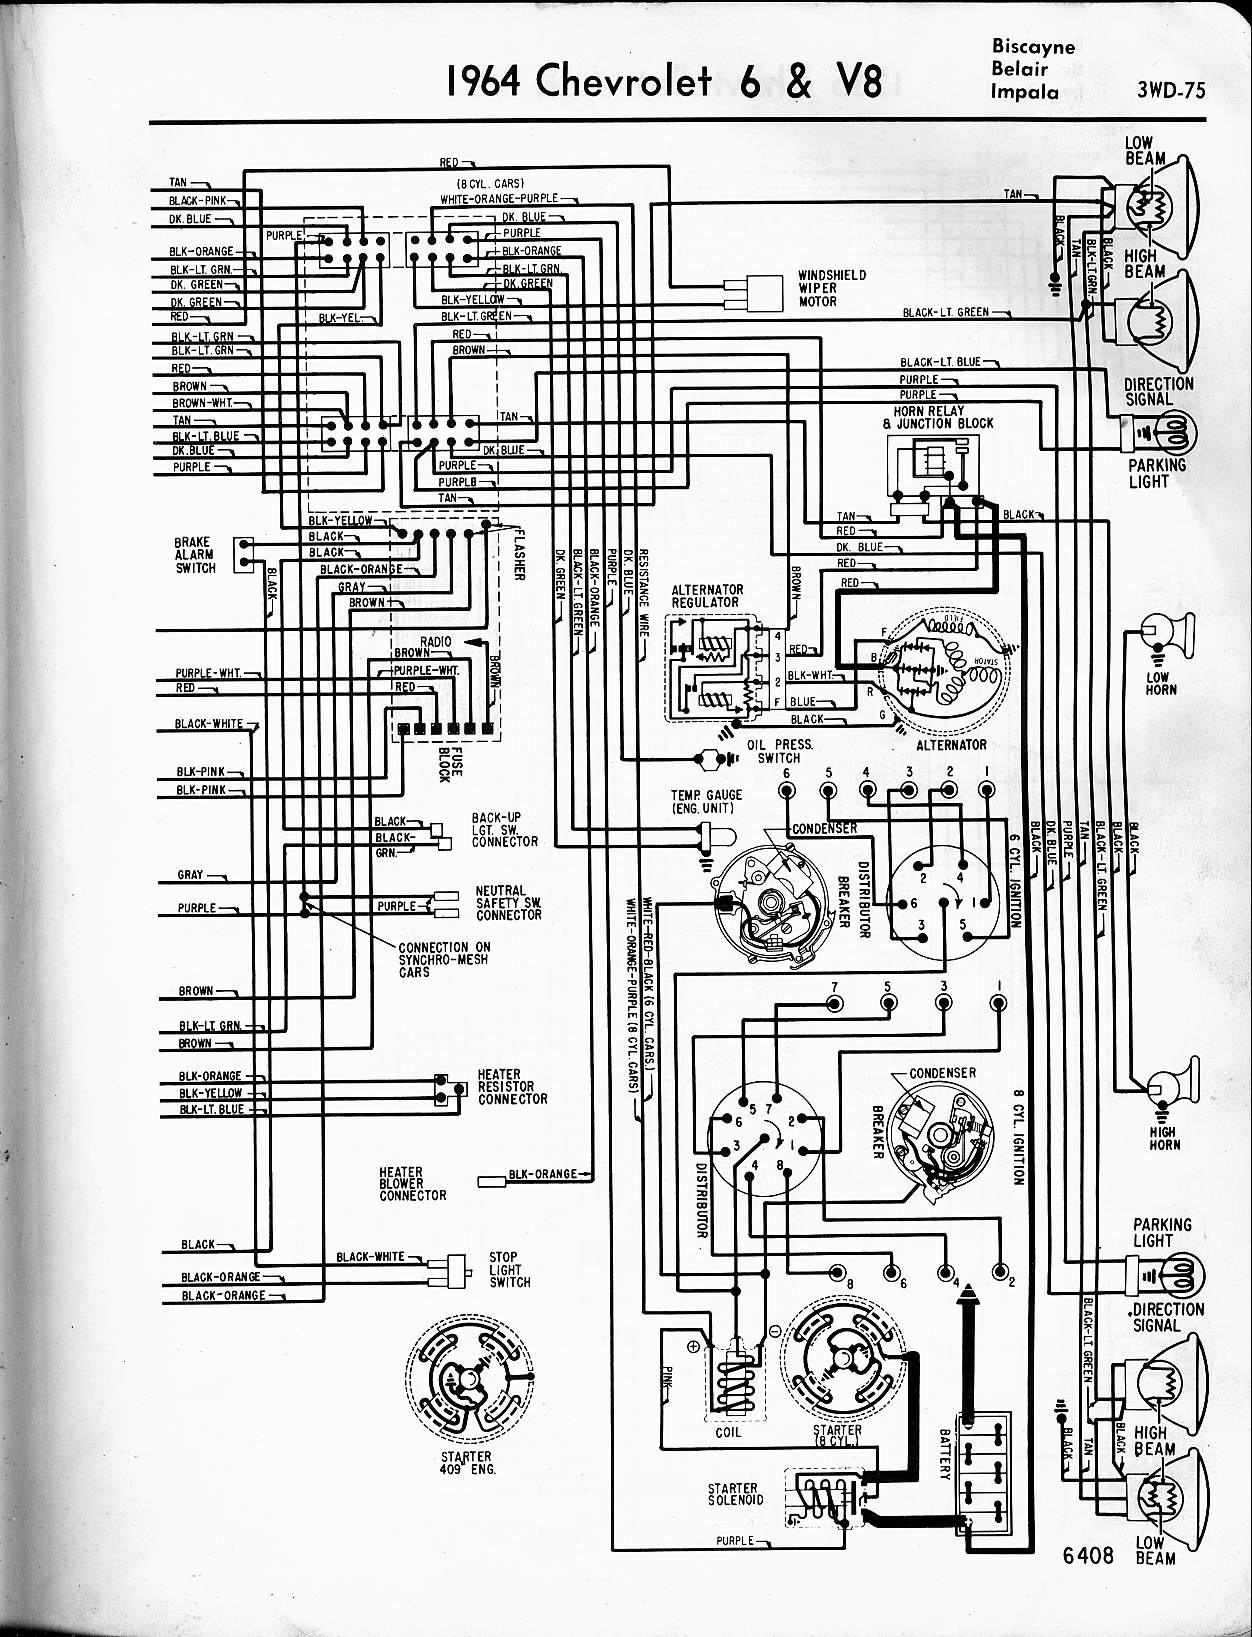 1964 6 u0026 V8 Biscayne Belair Impala  sc 1 st  The Old Car Manual Project : chevy impala wiring diagram - yogabreezes.com